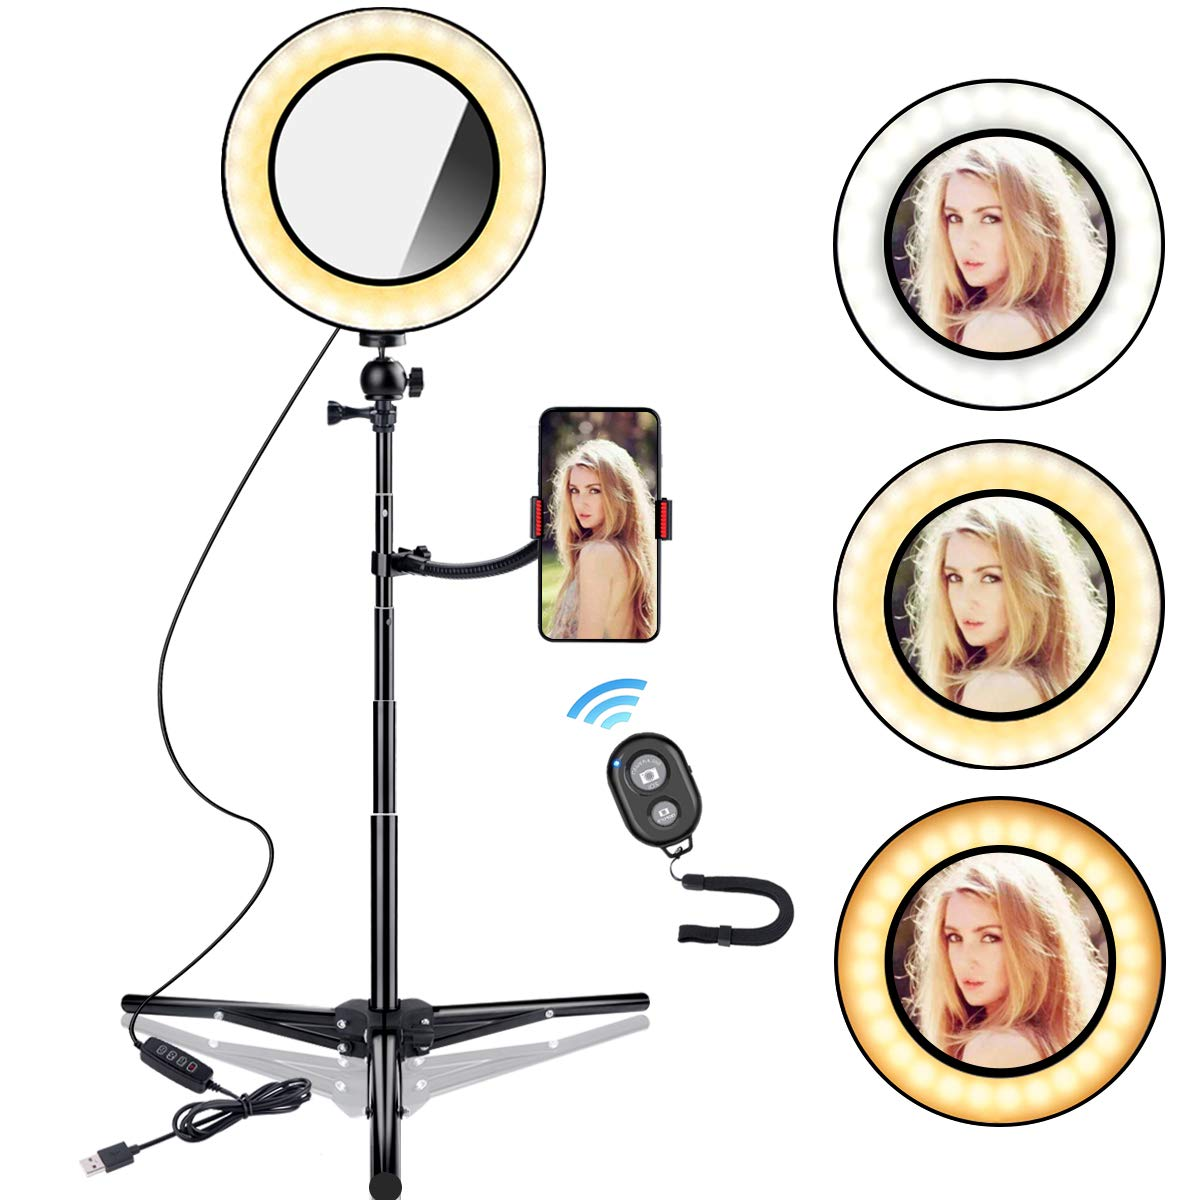 B-Land 7.9'' Ring Light with Tripod Stand & Phone Holder for YouTube Videos, LED Camera Selfie Light Ring with Remote, Vanity Makeup Lights with Mirror, 3 Modes & 10 Brightness by B-Land